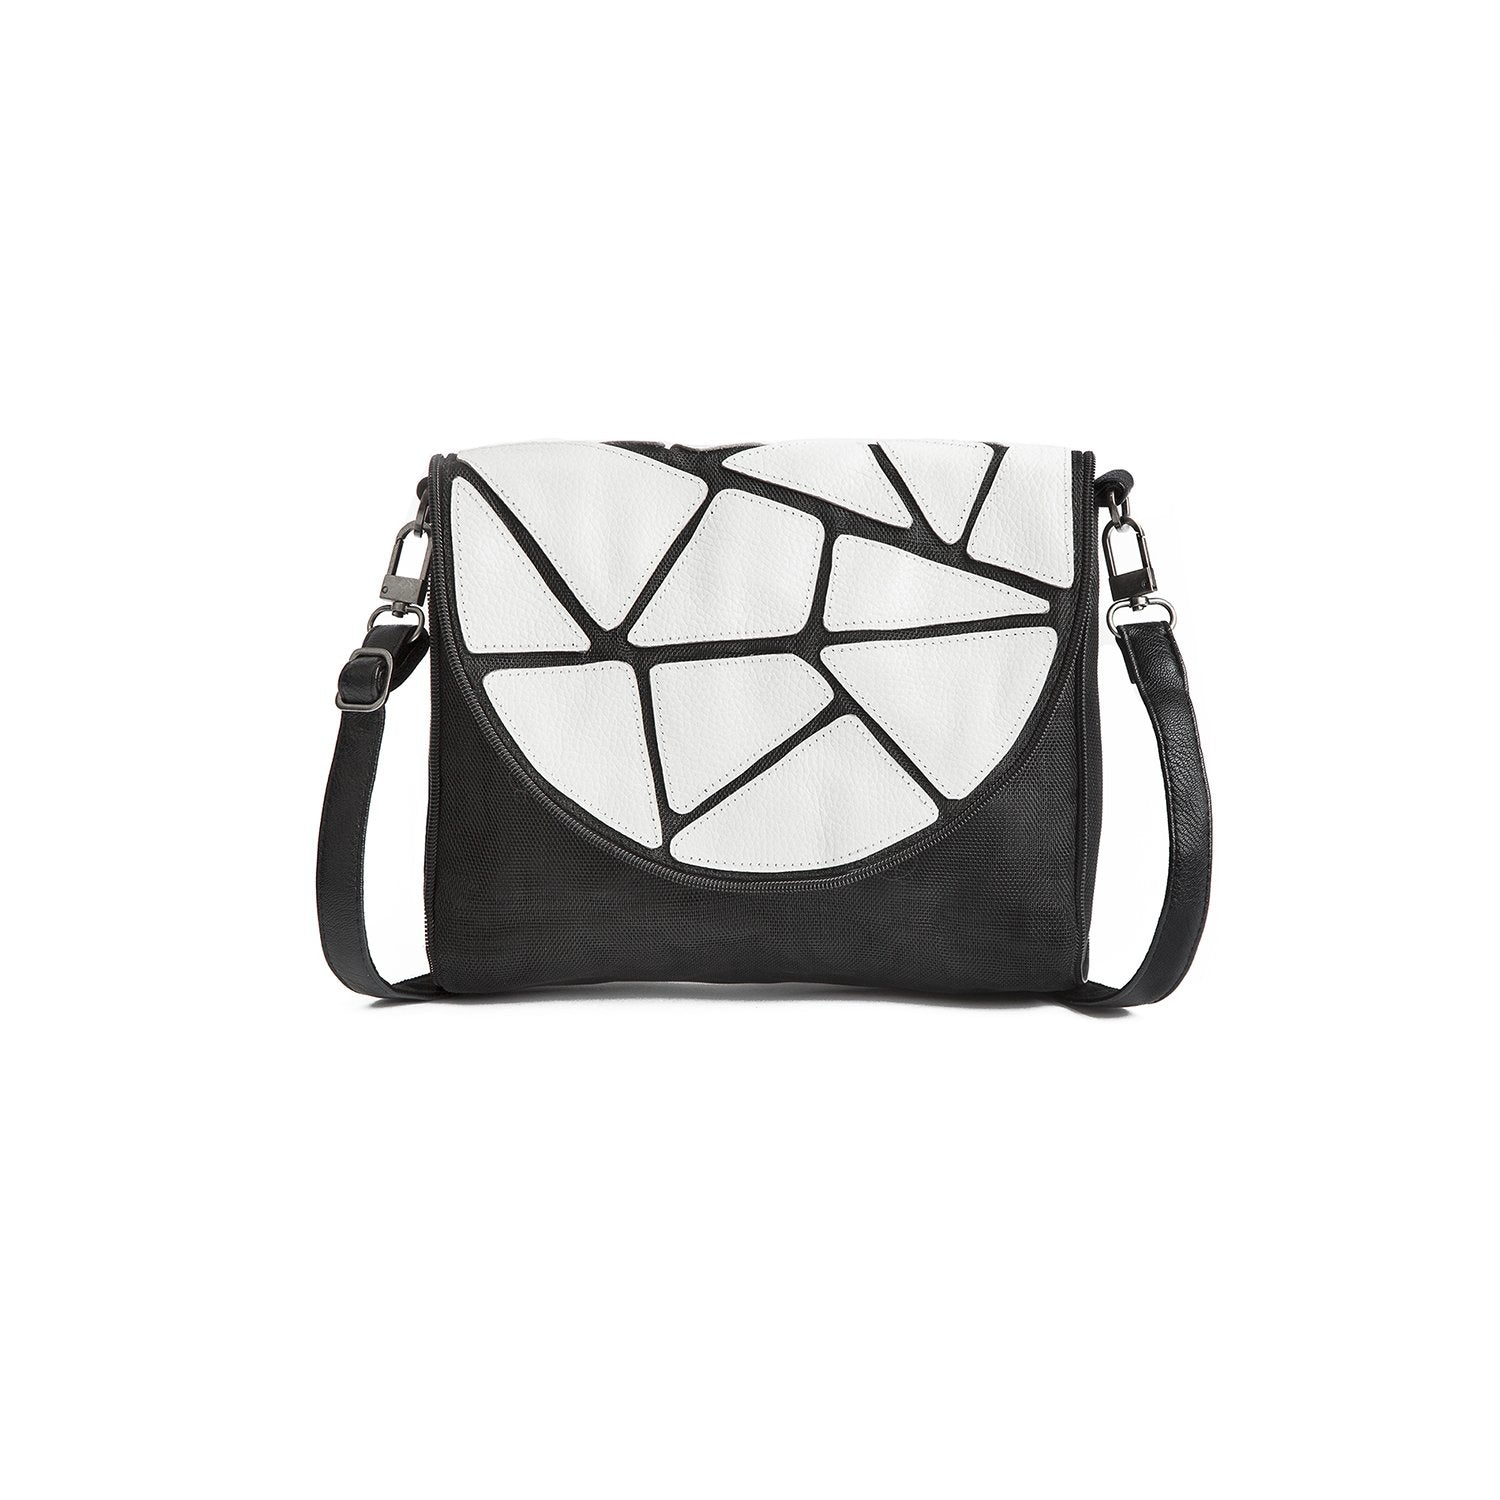 Ava leather and nylon bag by Smarteria - white patchwork semi-circle foldover flap with black nylon net body and adjustable long shoulder strap - Shop Fair Trade, Handmade, Ethical, Sustainable accessories & gifts Melbourne at ONLY JUST